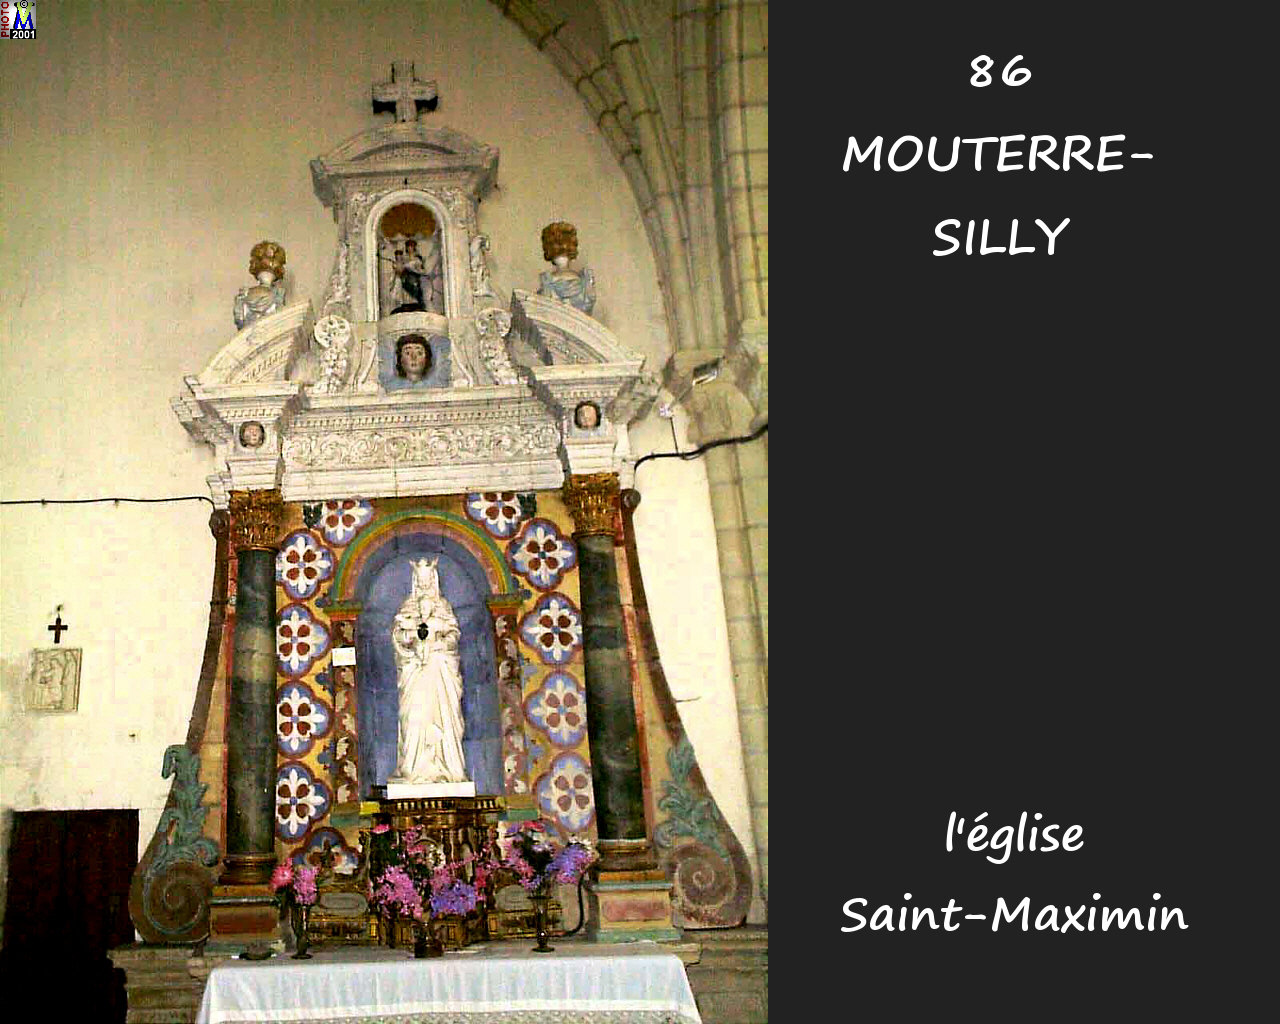 86MOUTERRE-SILLY_eglise_200.jpg